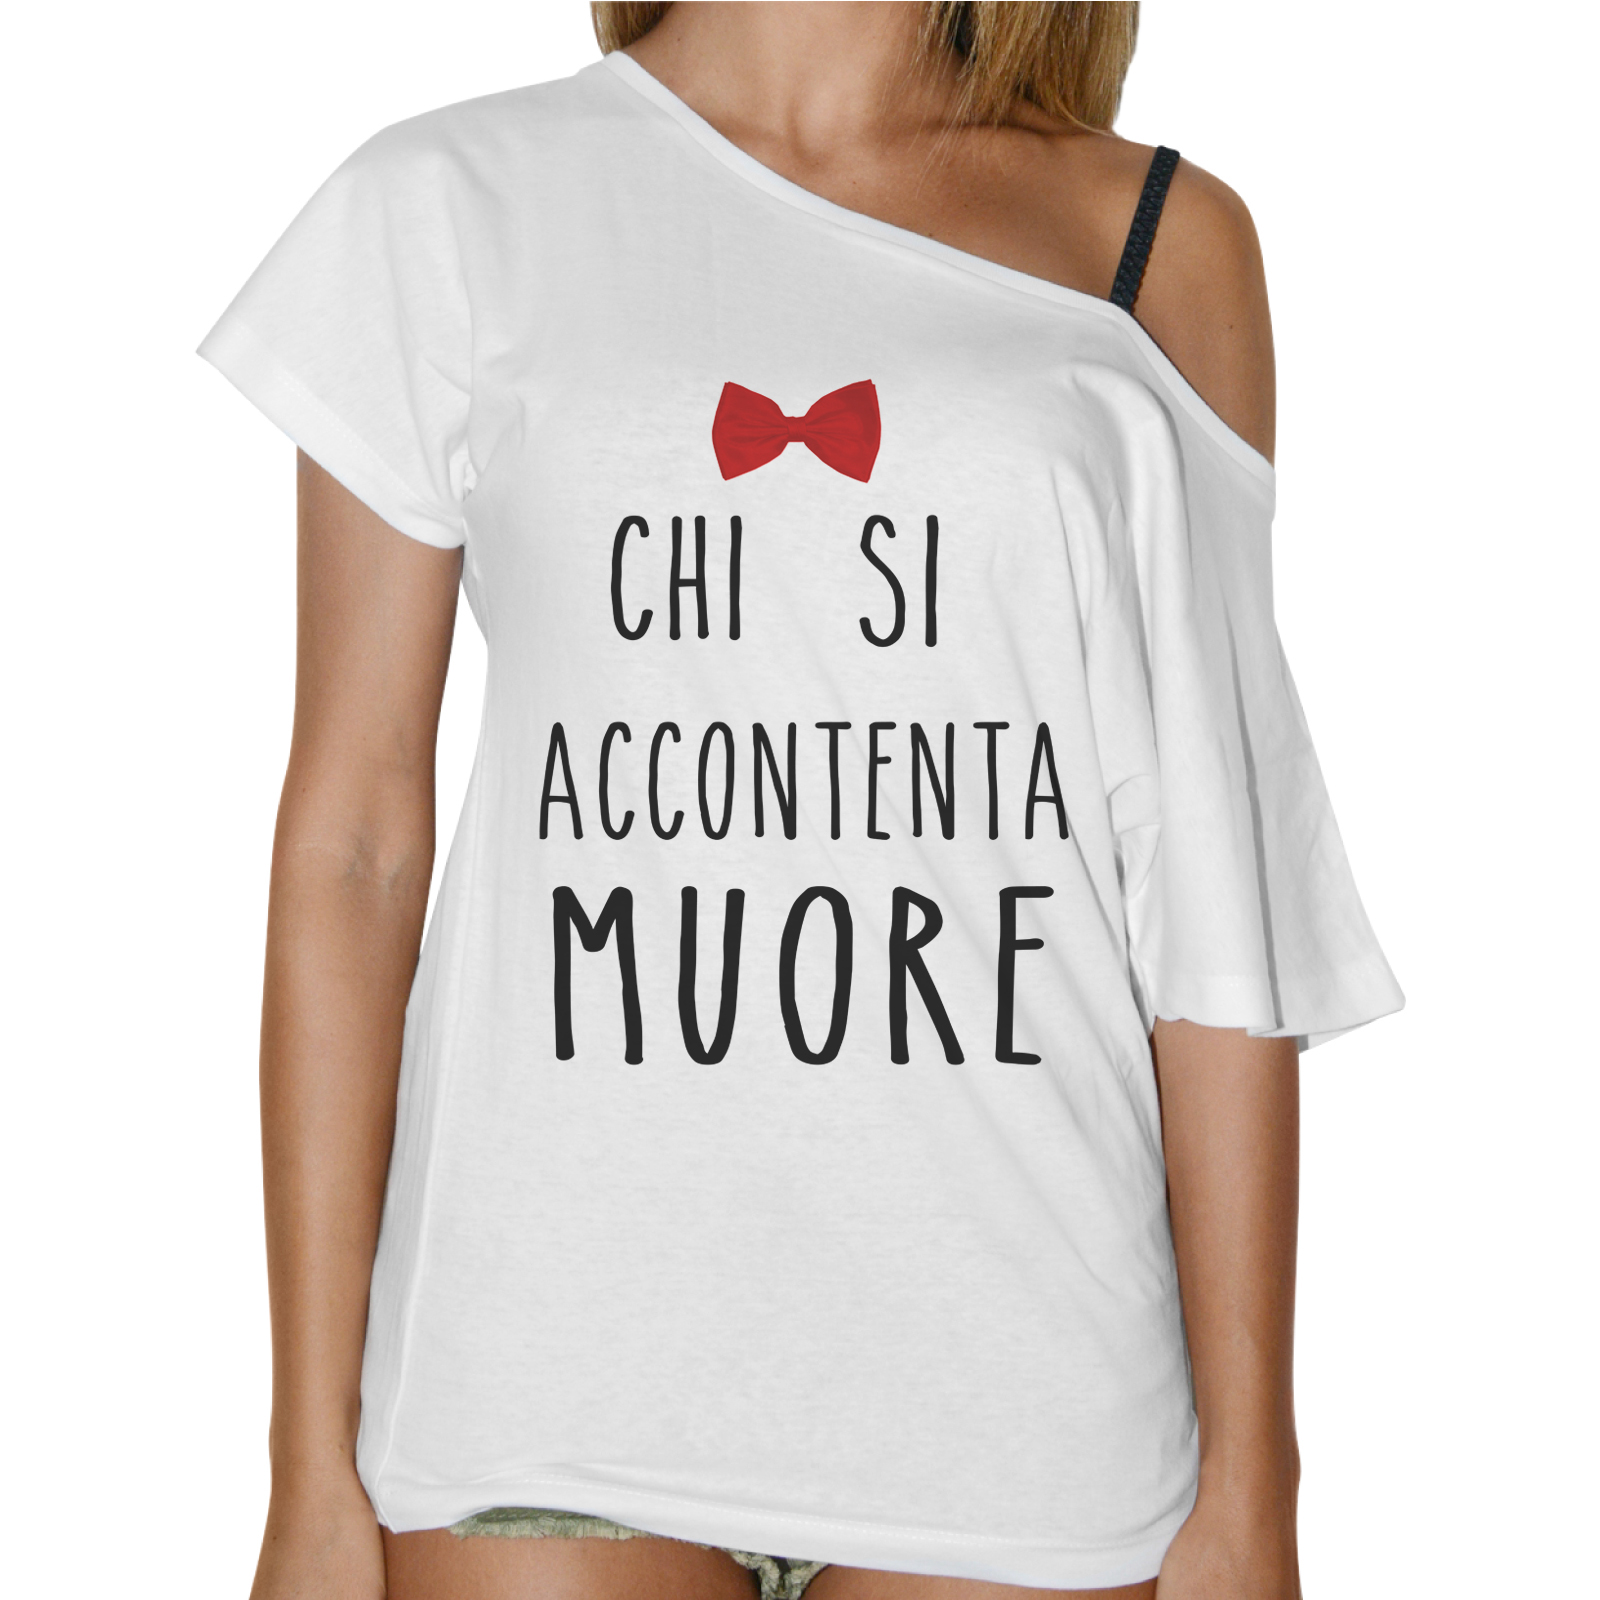 T-Shirt Donna Collo Barca CHI SI ACCONTENTA